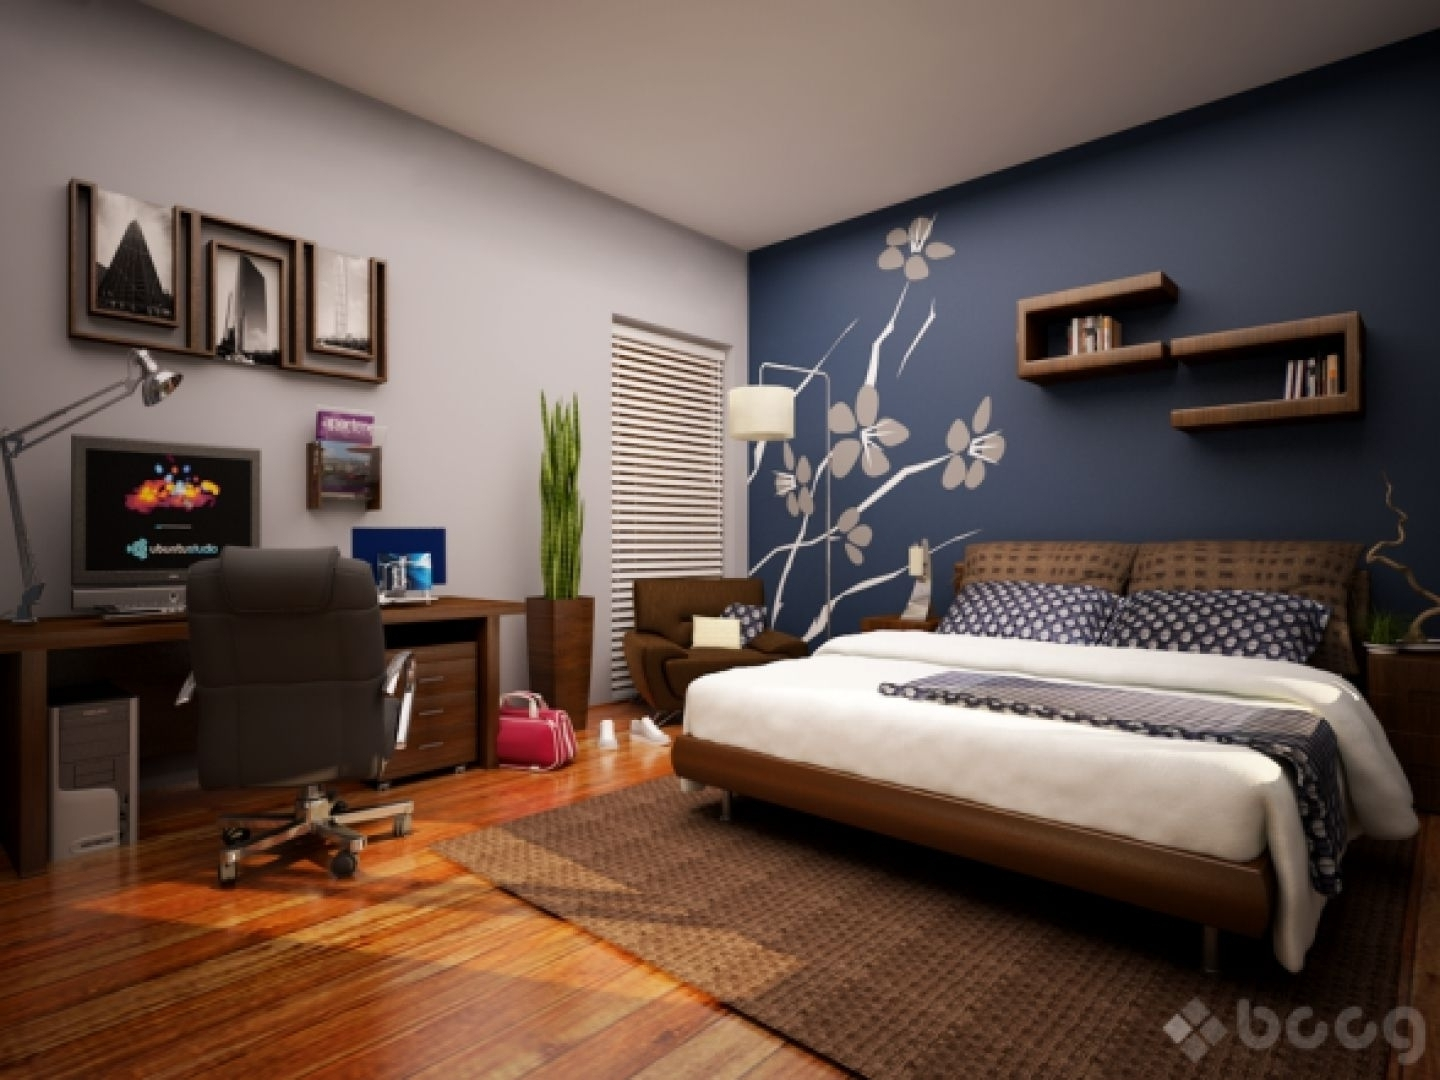 Trendy Wall Accents For Small Bedroom With Regard To Bedroom Design: Accent Wall Ideas For Small Bedroom Awesome (View 10 of 15)